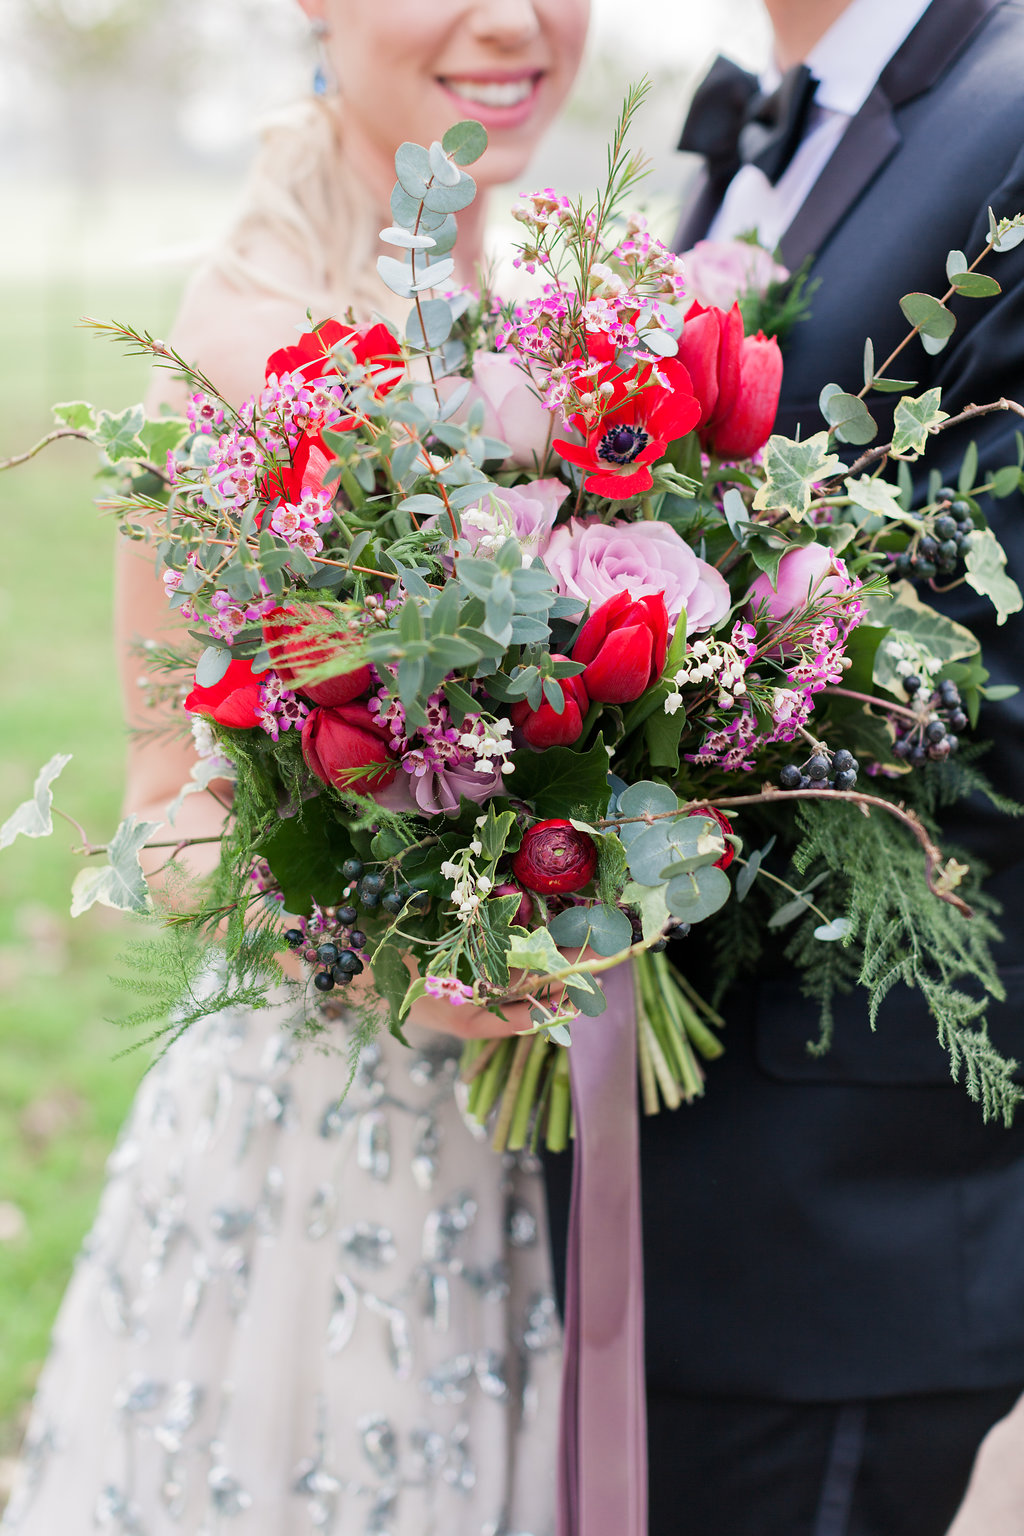 Red tulips, red anemone, lilac rose, eucalyptus, ferns, textured foliage, spring brides bouquet